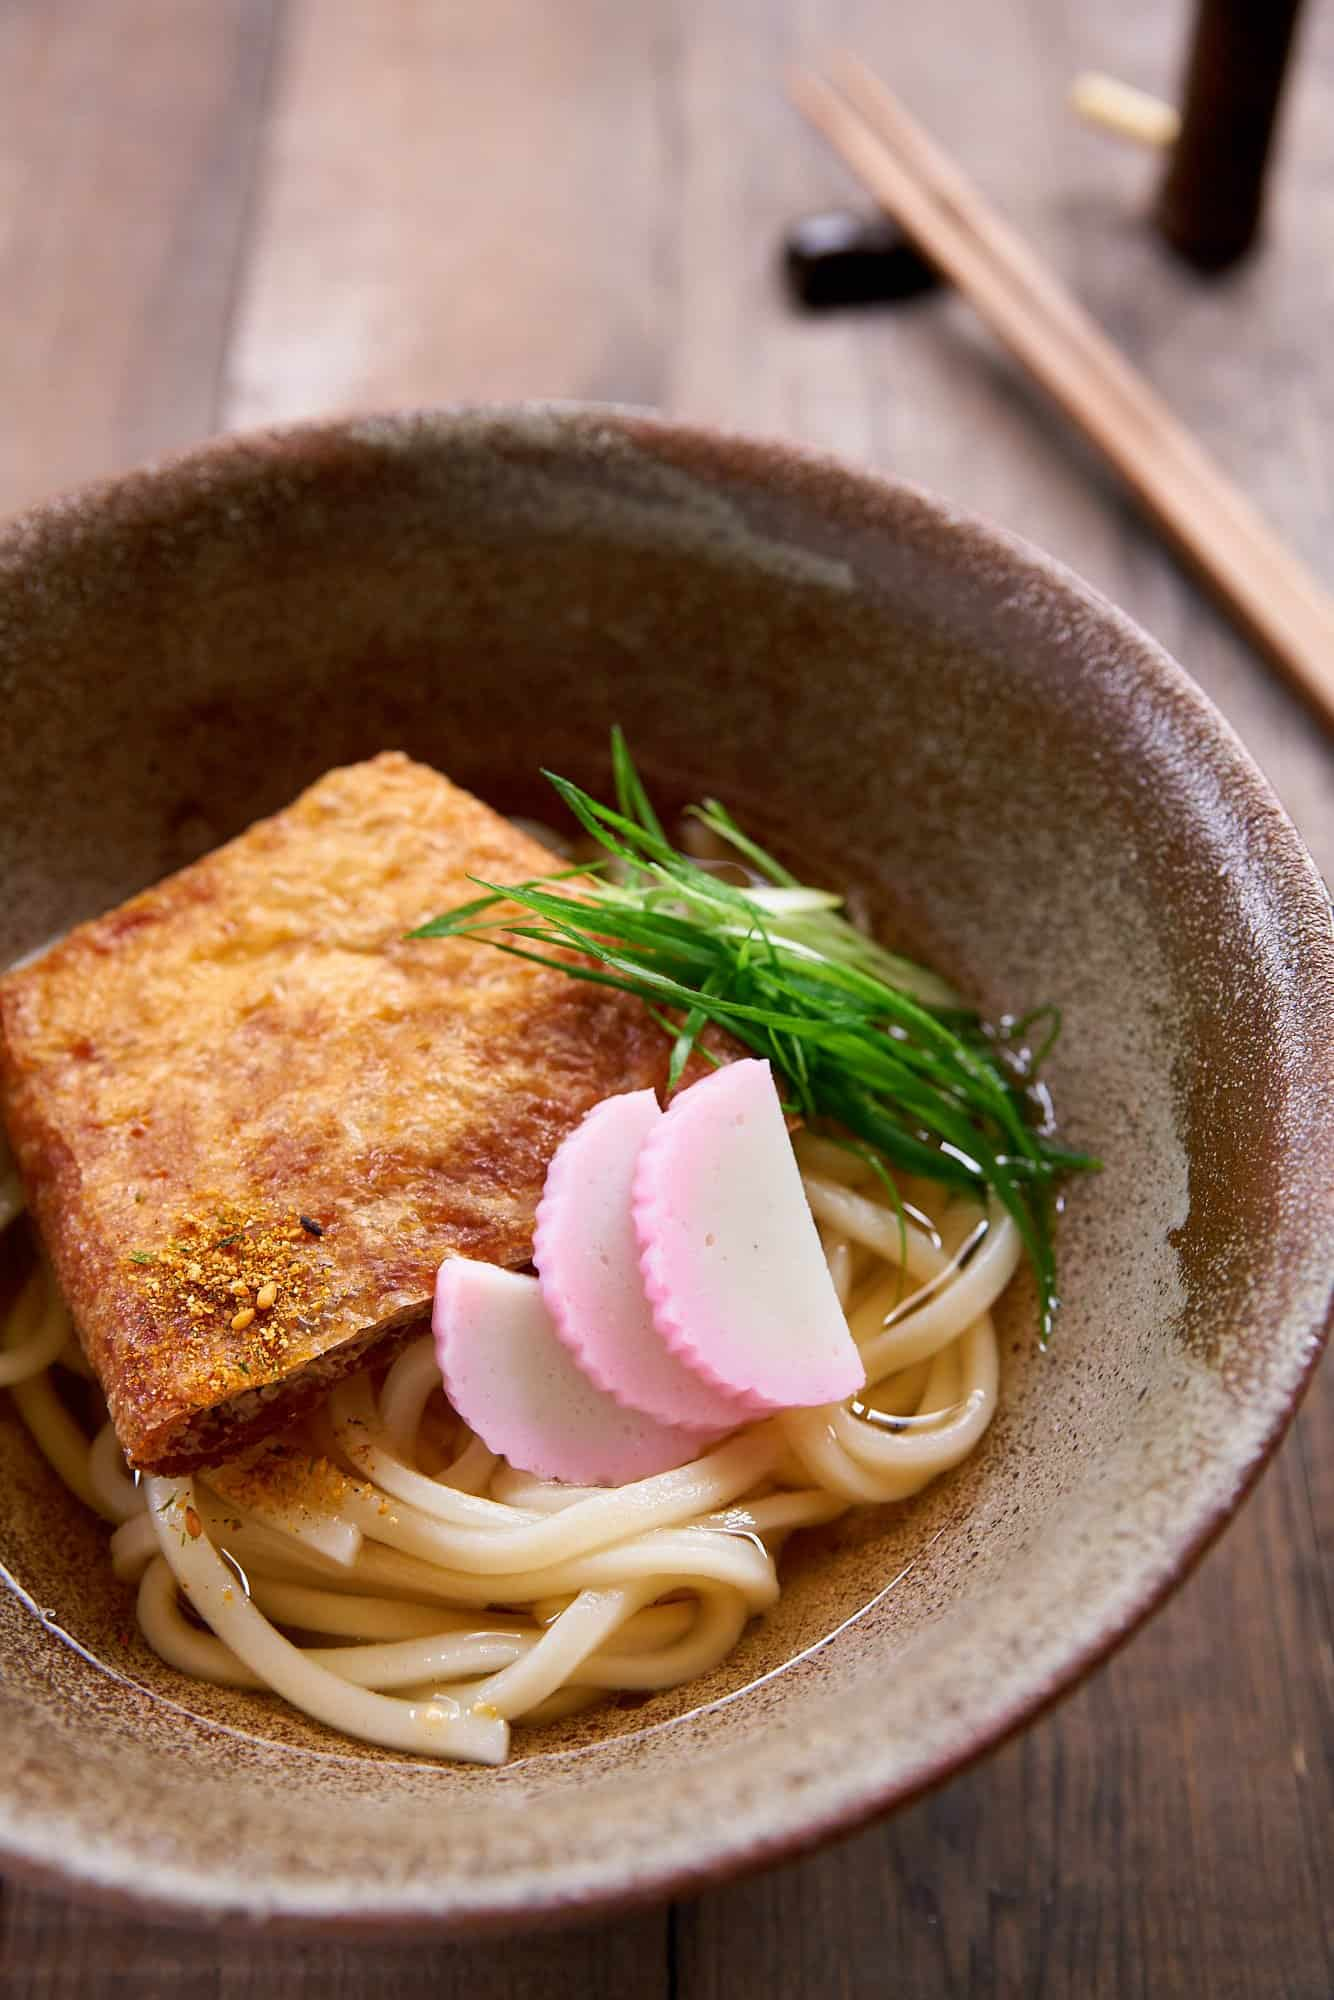 A classic Japanese noodle soup, Kitsune Udon features thick udon noodles in a light dashi broth, with a savory sweet slice of fried tofu on top.